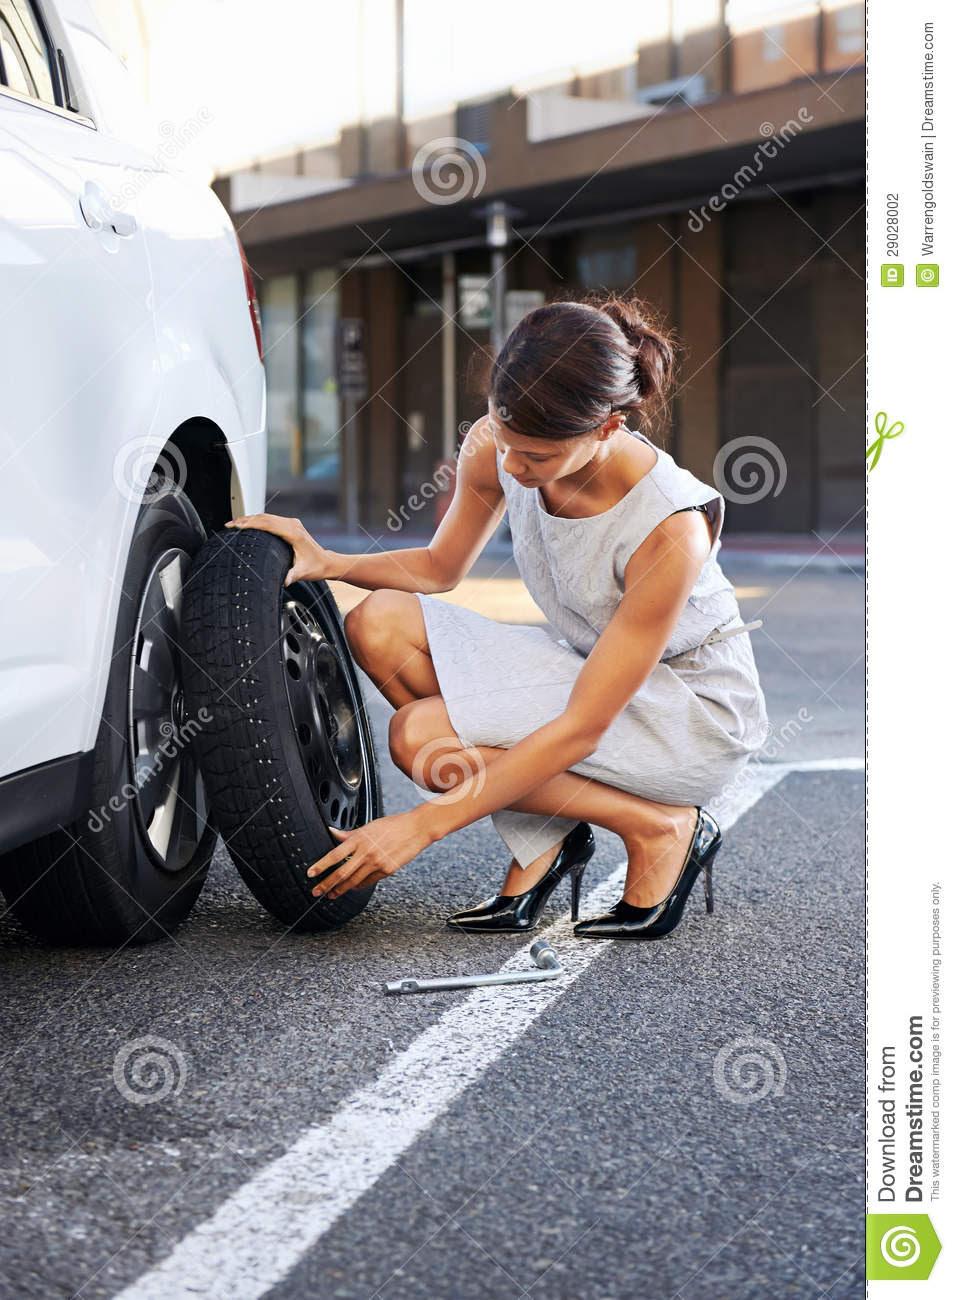 Flat Tire Woman Stock Photography Image 29028002